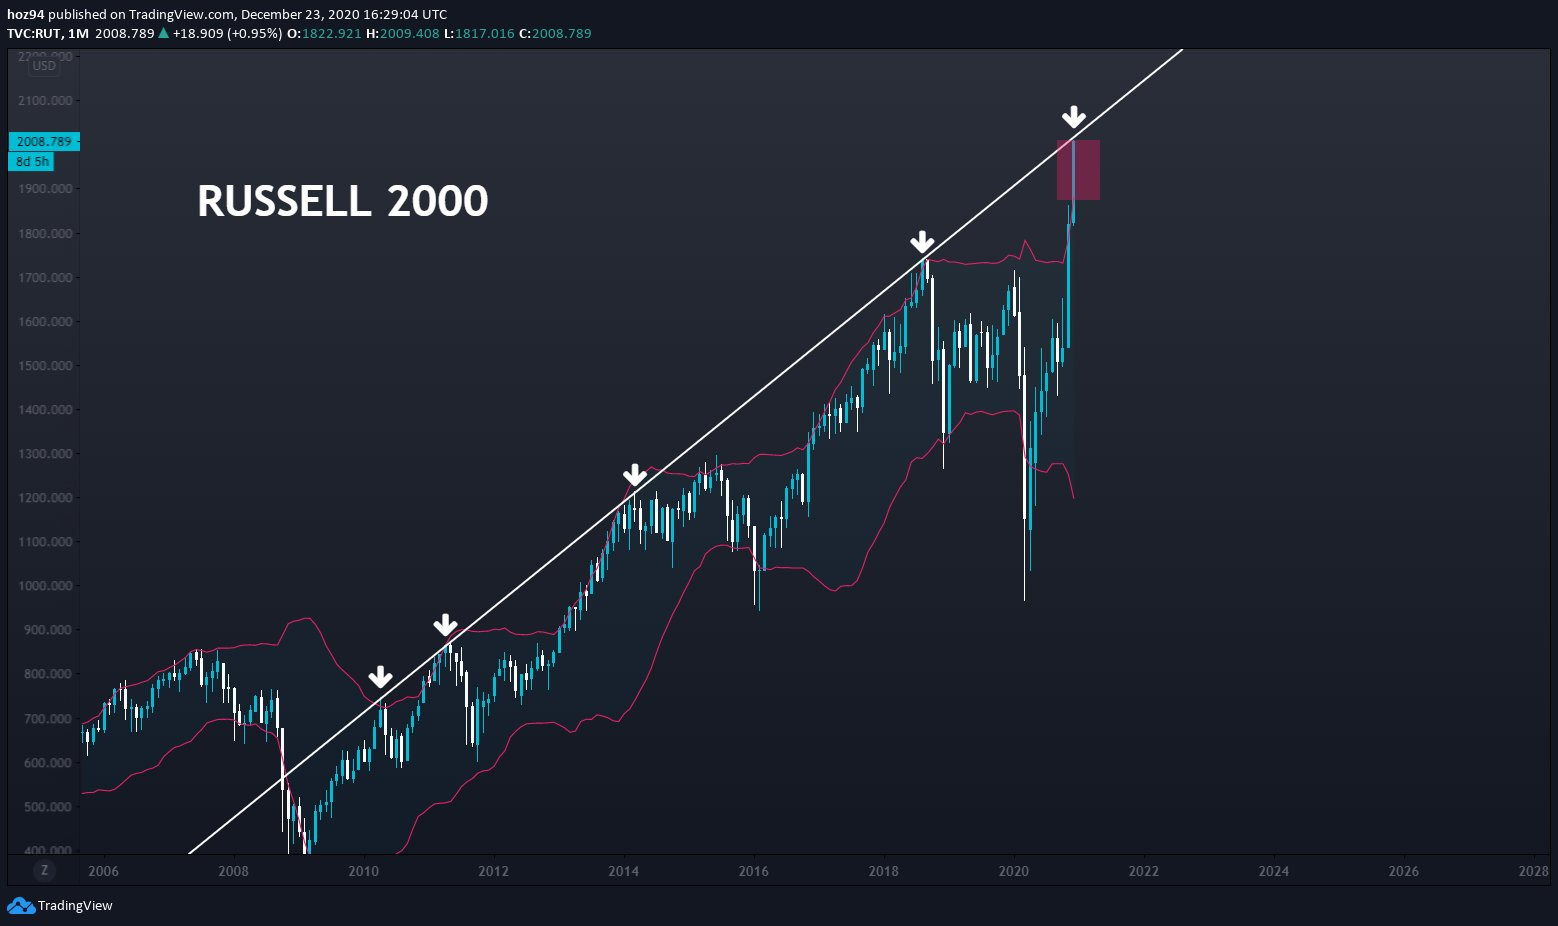 Russell 2000 price furthest above its upper monthly Bollinger band in a decade